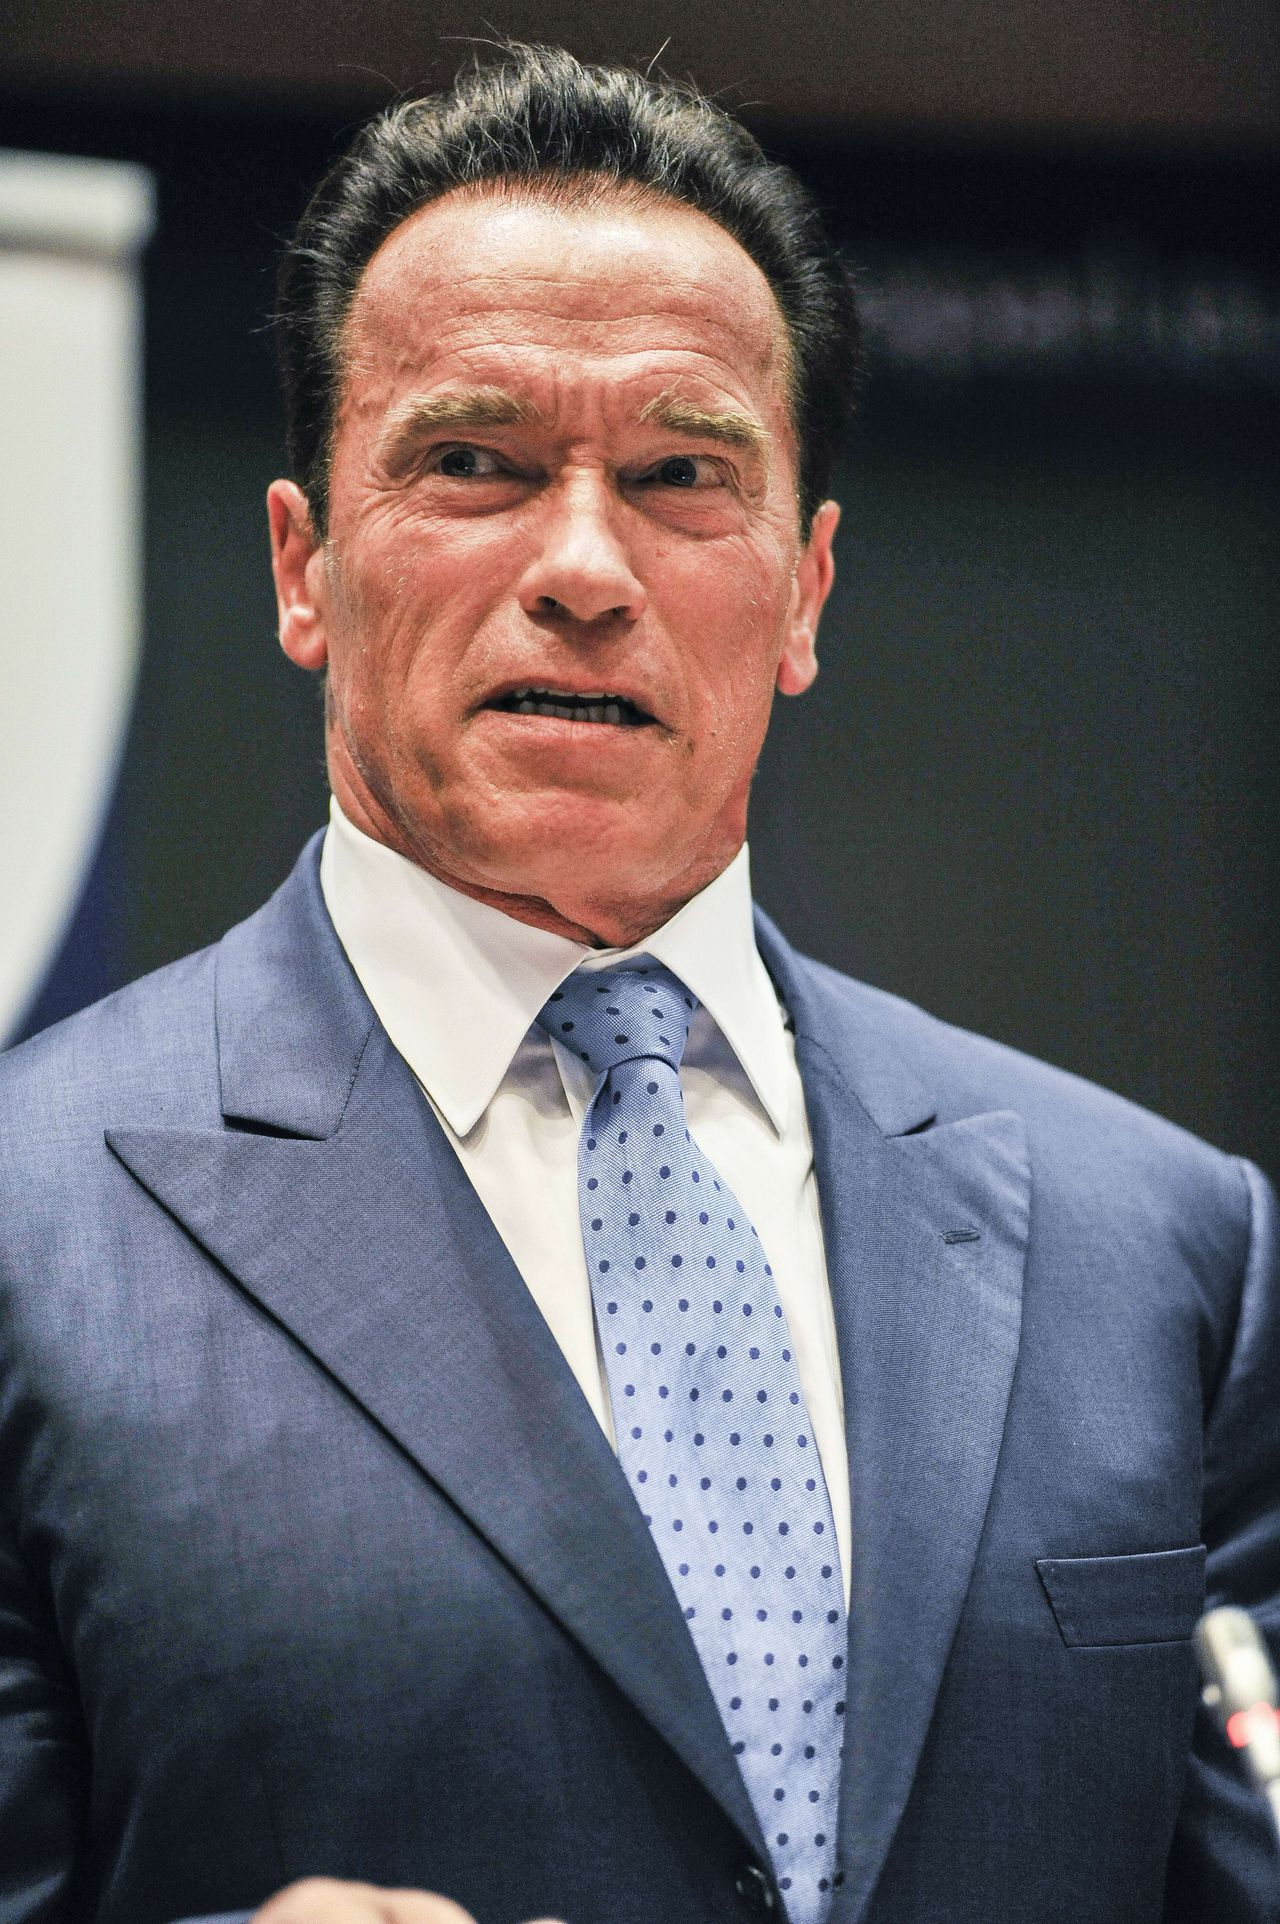 Former Governor of California and founding chair of the R20 initiative - Regions of Climate Action, Arnold Schwarzenegger gives a speech during the yearly ceremony of the Covenant of Mayors at the European Parliament in Brussels, on June 24, 2013. The R20 is a coalition of partners led by regional governments that work to promote and implement projects that are designed to produce local economic and environmental benefits in the form of reduced energy consumption and greenhouse gas emissions, strong local economies, improved public health, and new green jobs. AFP PHOTO /BELGA / LAURIE DIEFFEMBACQ